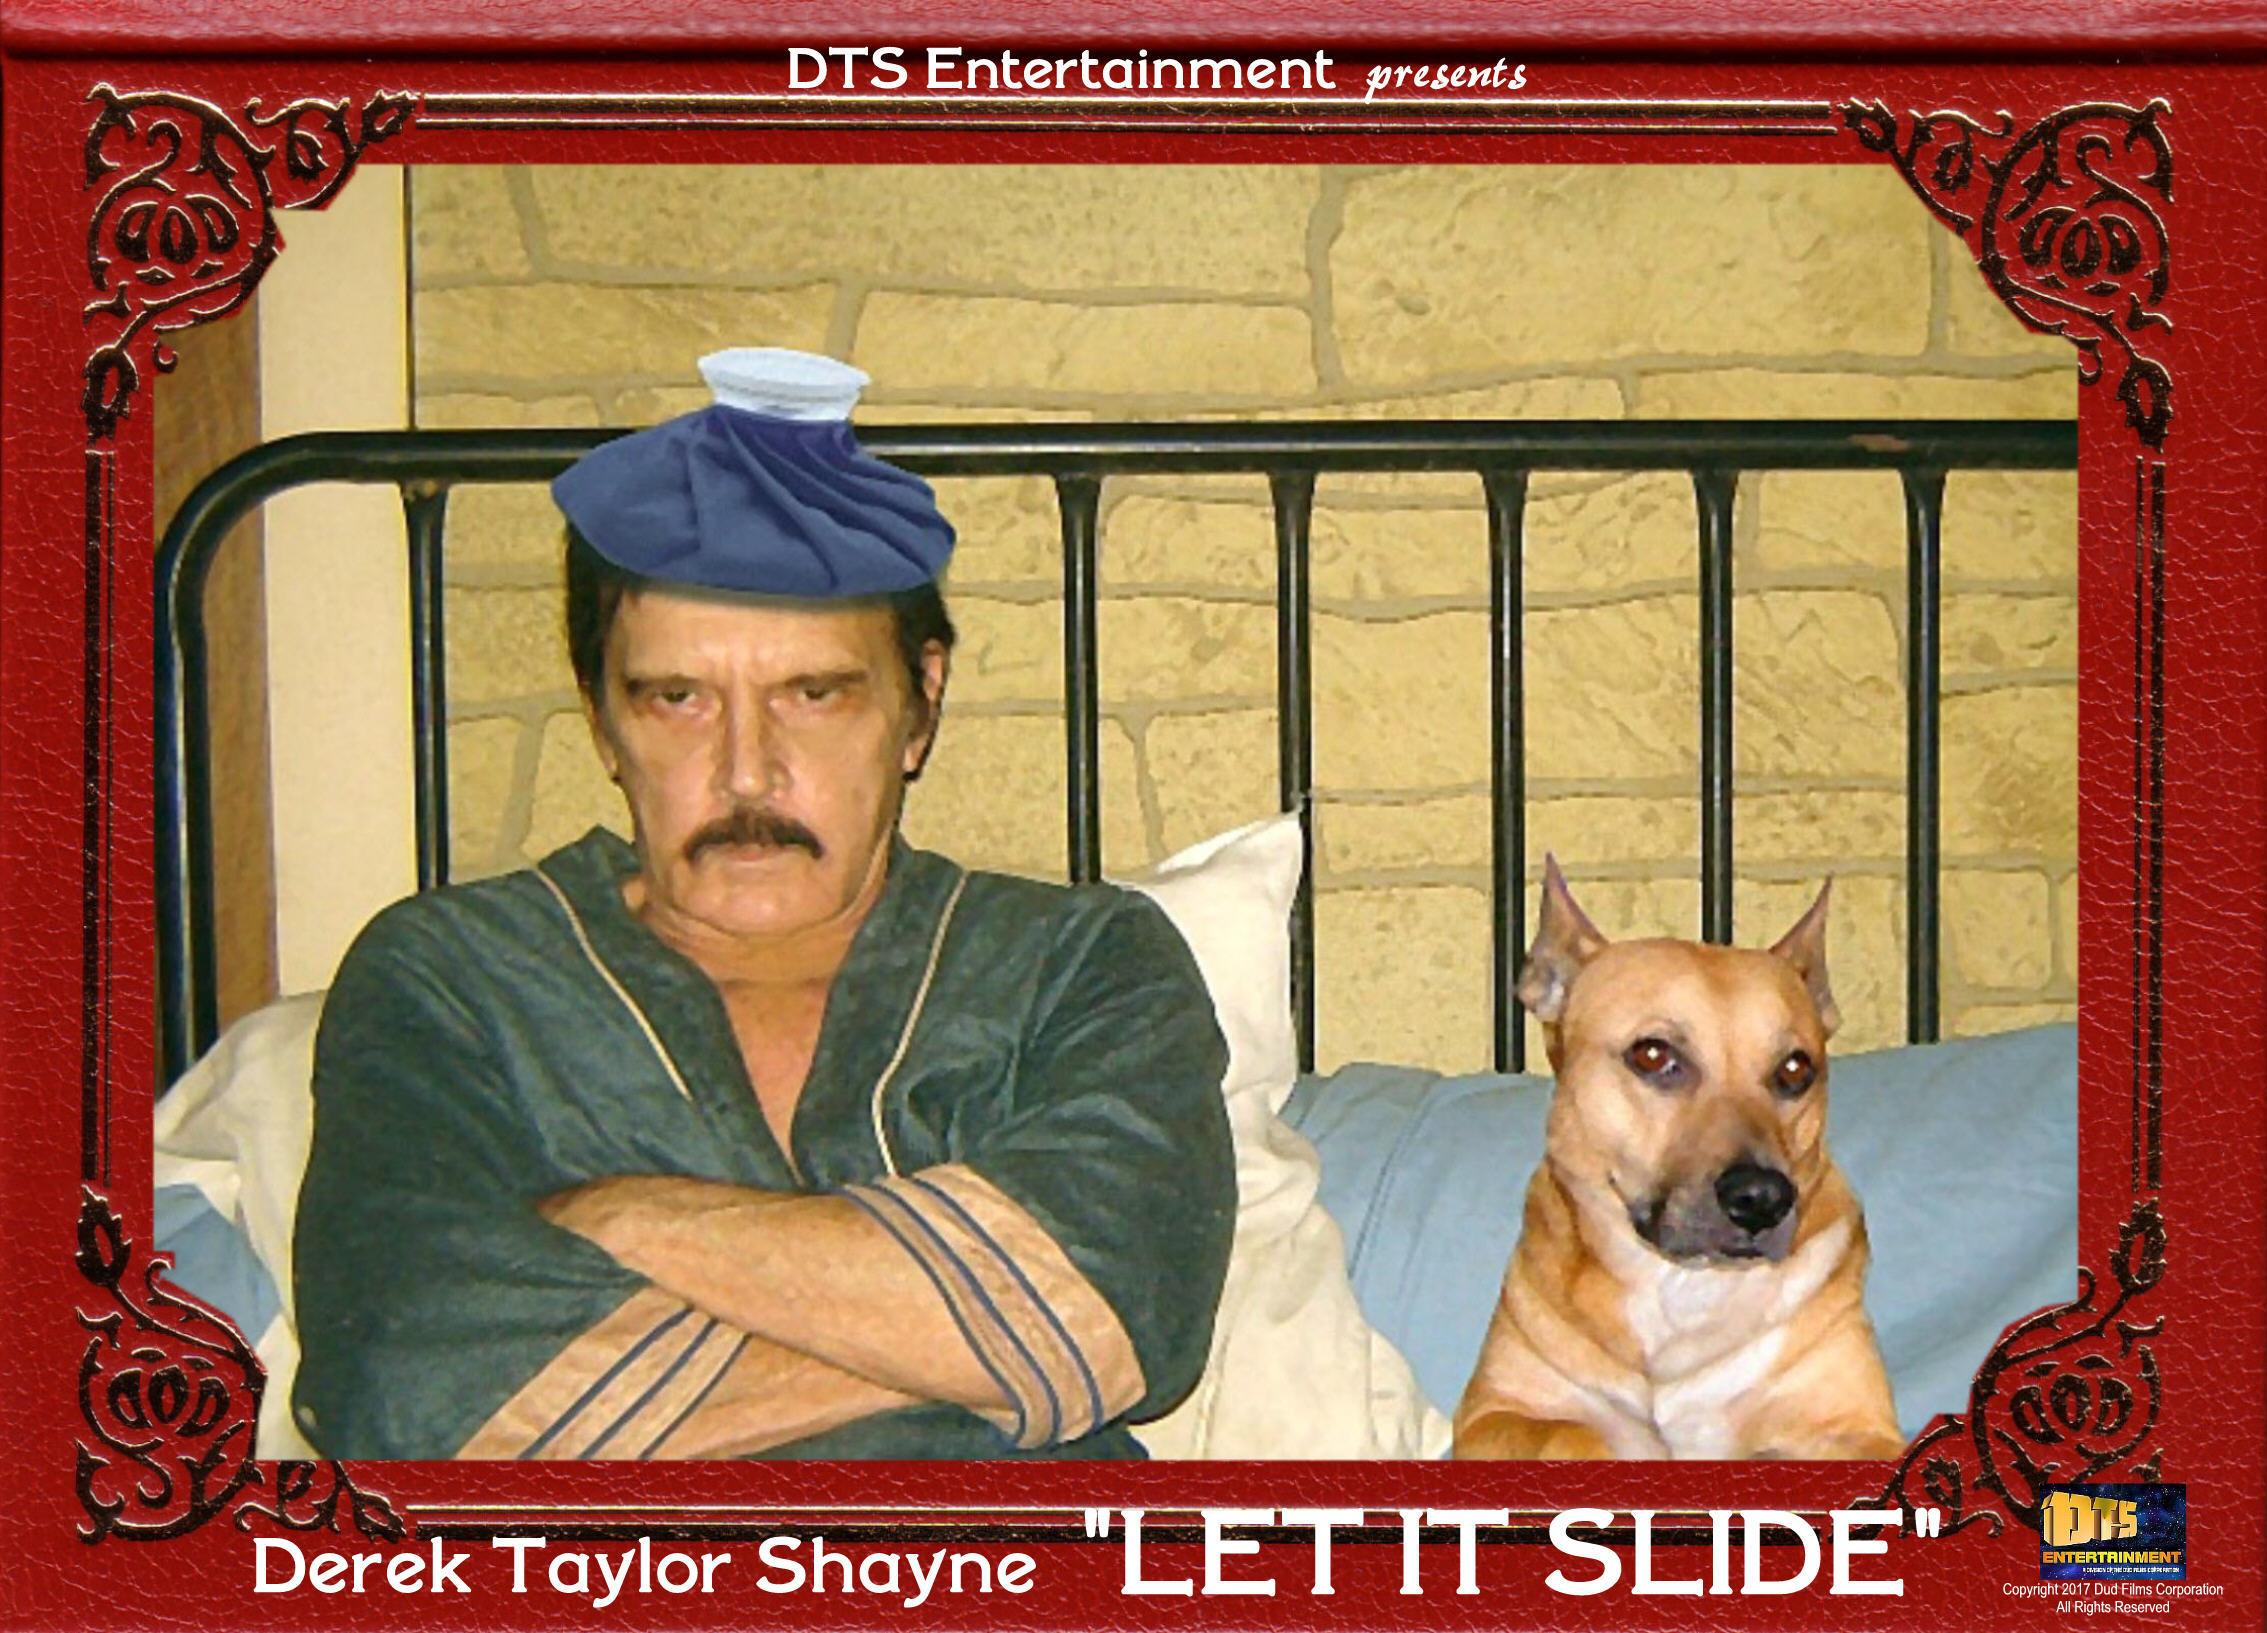 "Lobby Card for the DTS Entertainment Comedy Film, ""Let It Slide"""